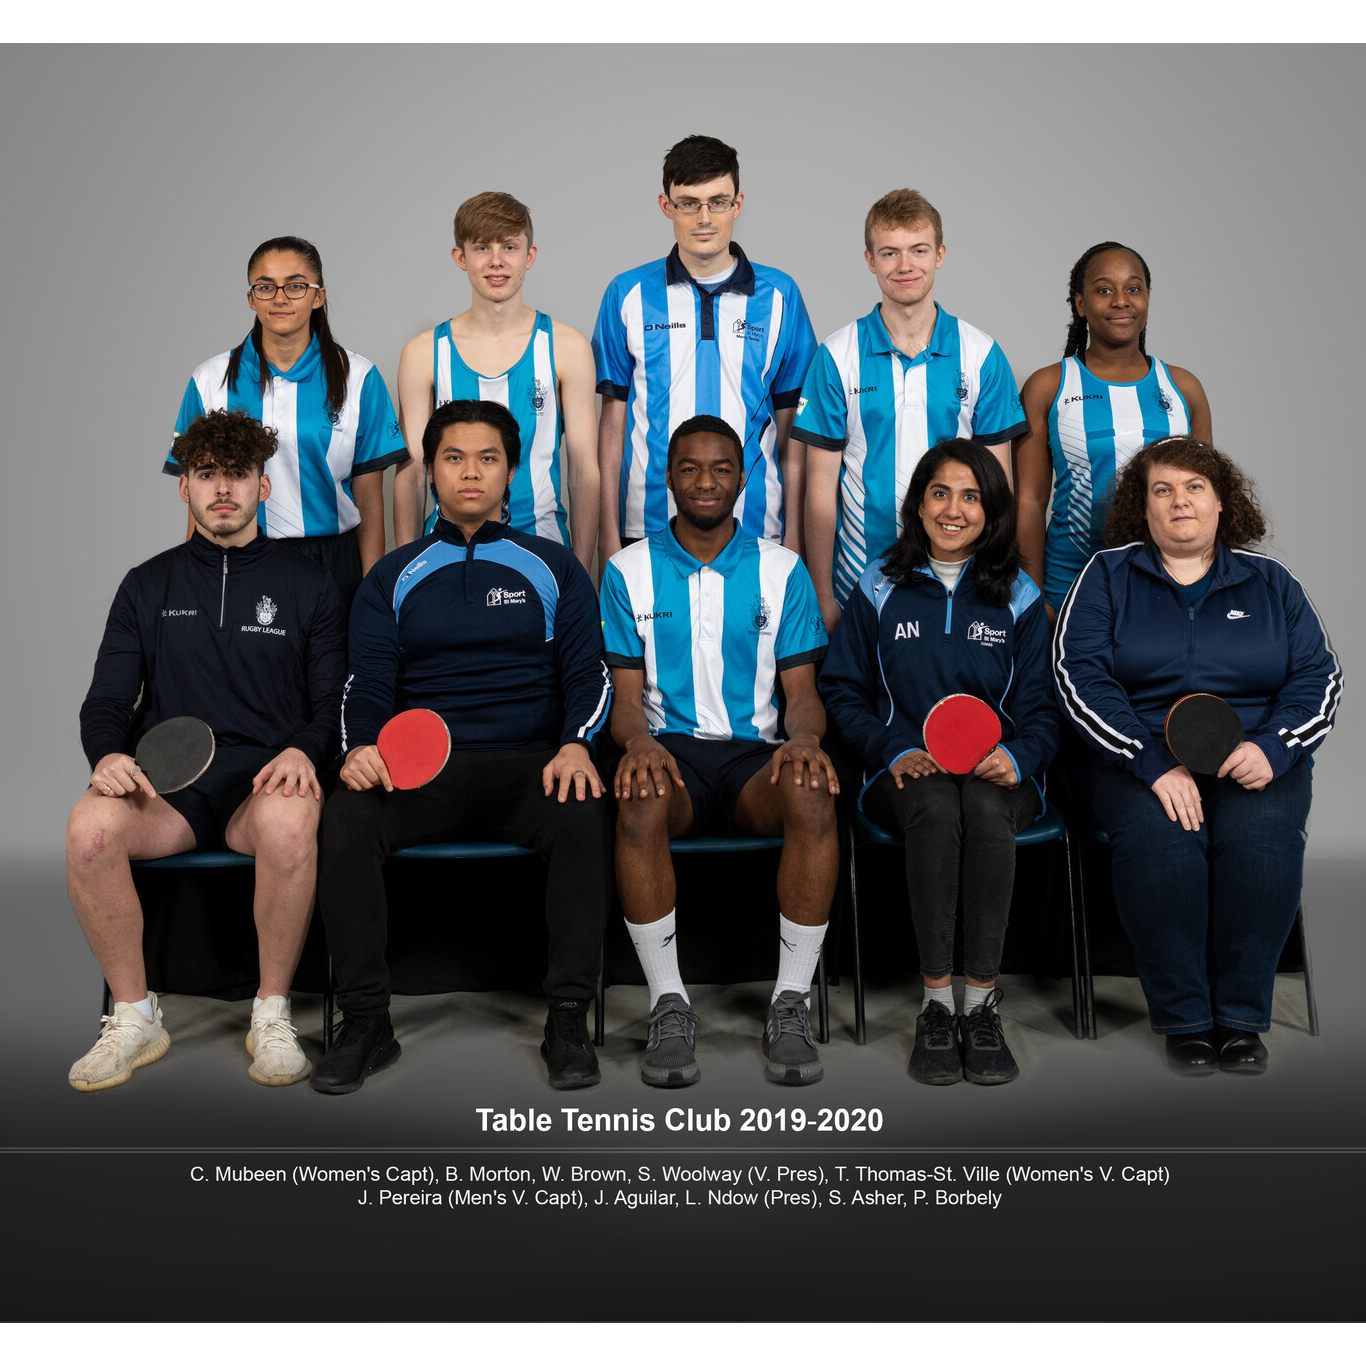 Full team photo of the Table Tennis Club